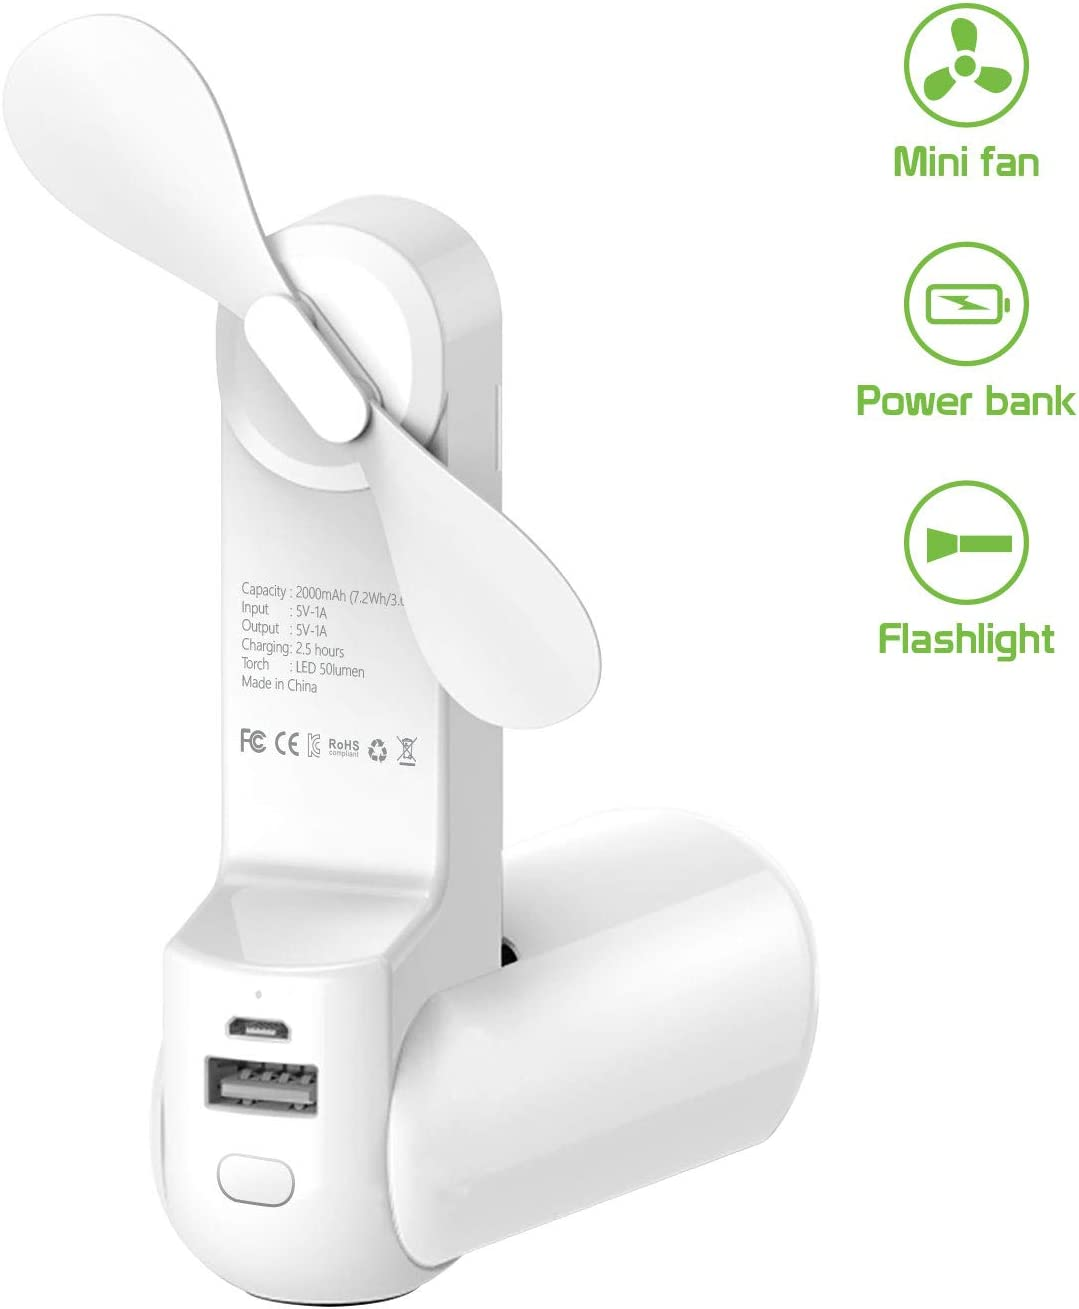 Cellet Foldable 3 in 1 Handheld Portable Mini Air Cooling Fan, Power Bank 2000mAh, and Flashlight. Micro USB Rechargeable 10-20 Hrs. of Battery Life Smart LED Indicators Double Speed (White)